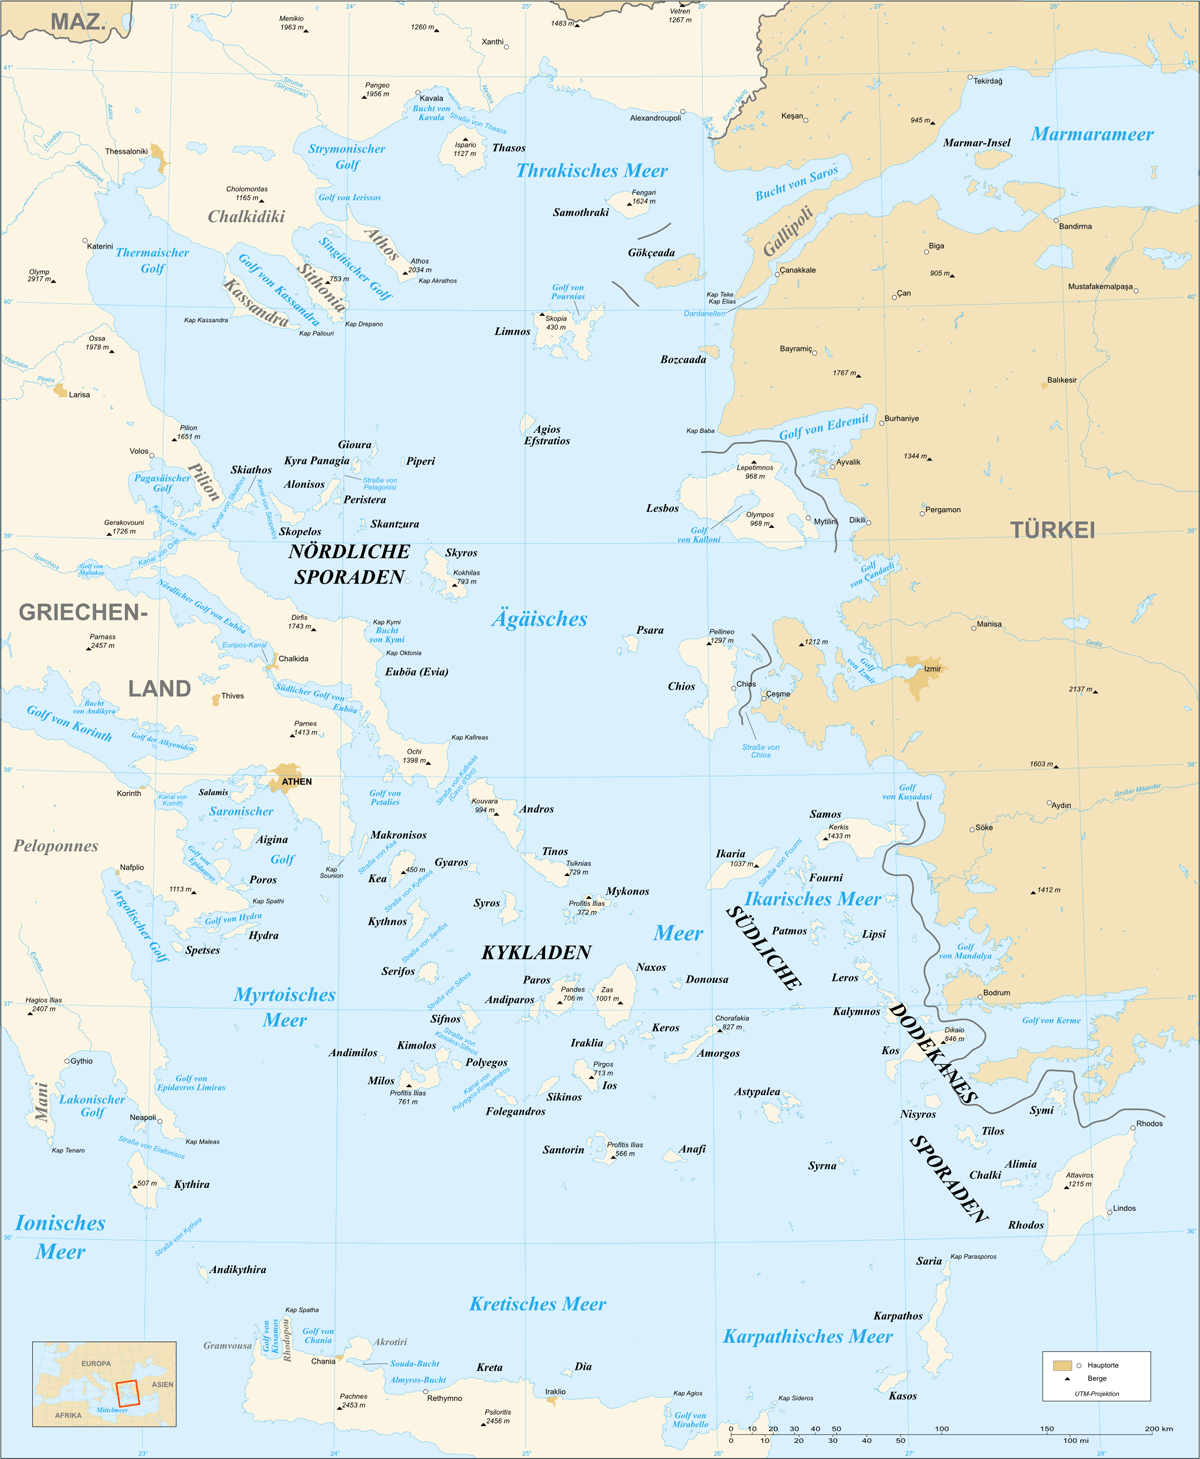 Aegean Sea Map De • Mapsof.net on red sea, map of troy, map of english channel, map of gulf of aden, map of africa, map of balkan mountains, map of persian gulf, north sea, black sea, map of mesopotamia, baltic sea, caspian sea, sea of marmara, map of suez canal, map of turkey, map of bosporus, map of europe, map of tigris river, mediterranean sea, map of greece, map of gulf of finland, map of mediterranean, map of macedonia, map of spain, map of cyclades, map of dardanelles, adriatic sea, map of athens, ionian sea,